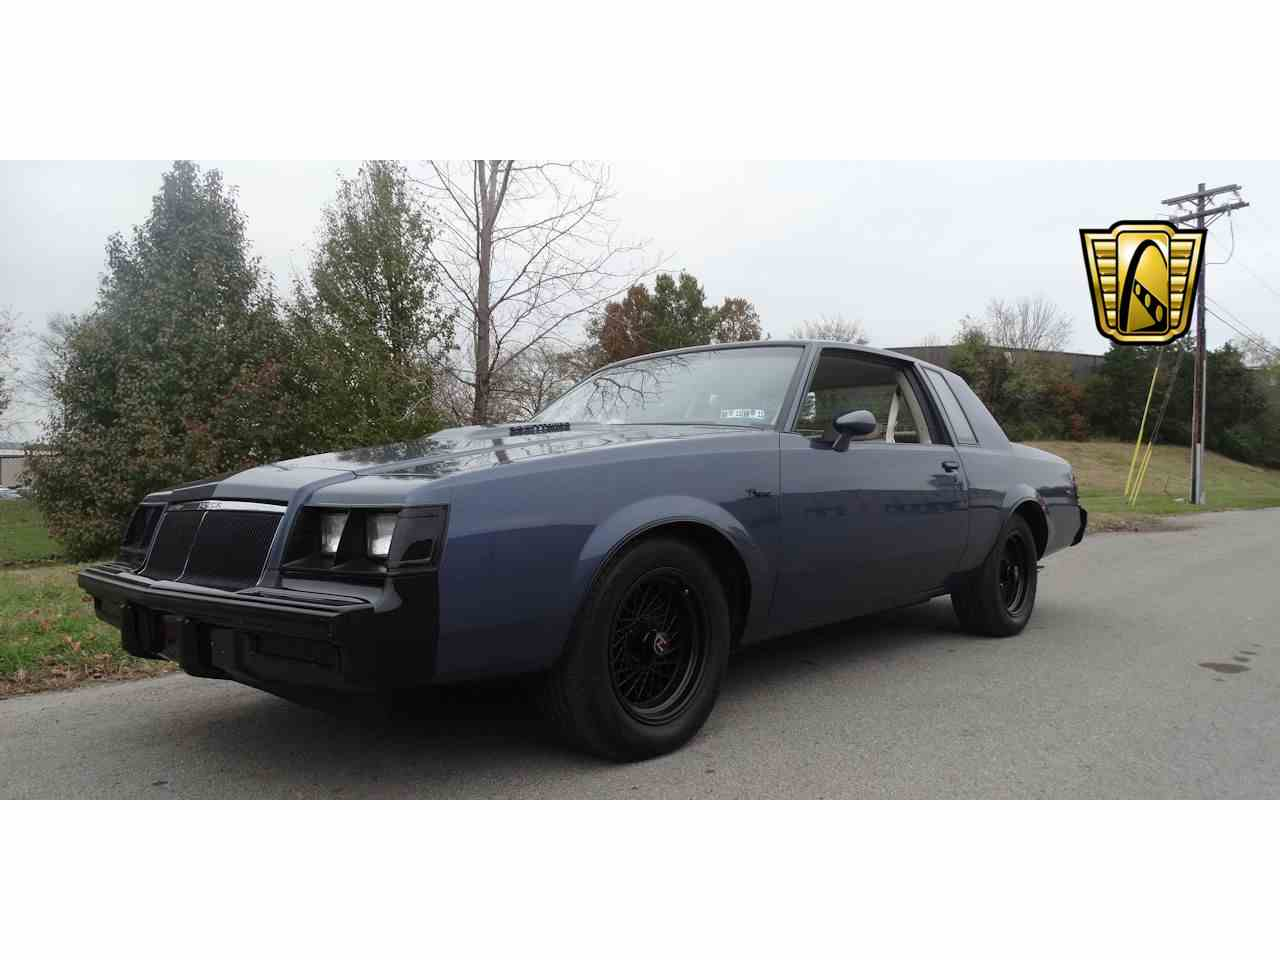 gnx money the buick of bring news regal for sale tons auction first is